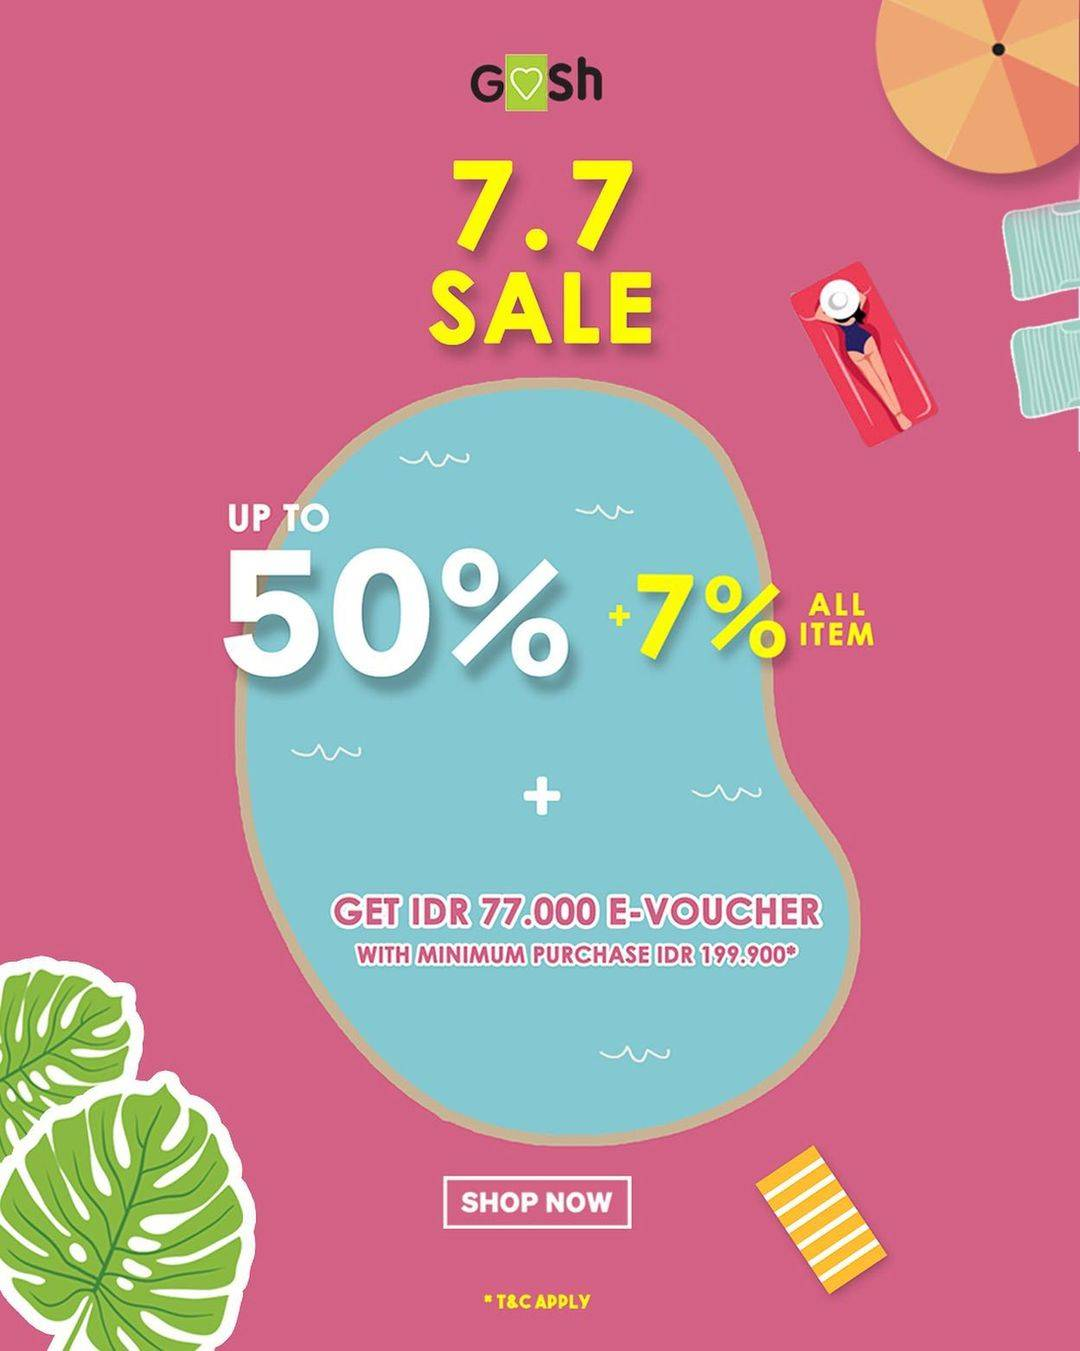 Diskon Gosh 7.7 Sale Get Discount Up To 50% Off + 7% Off On All Item